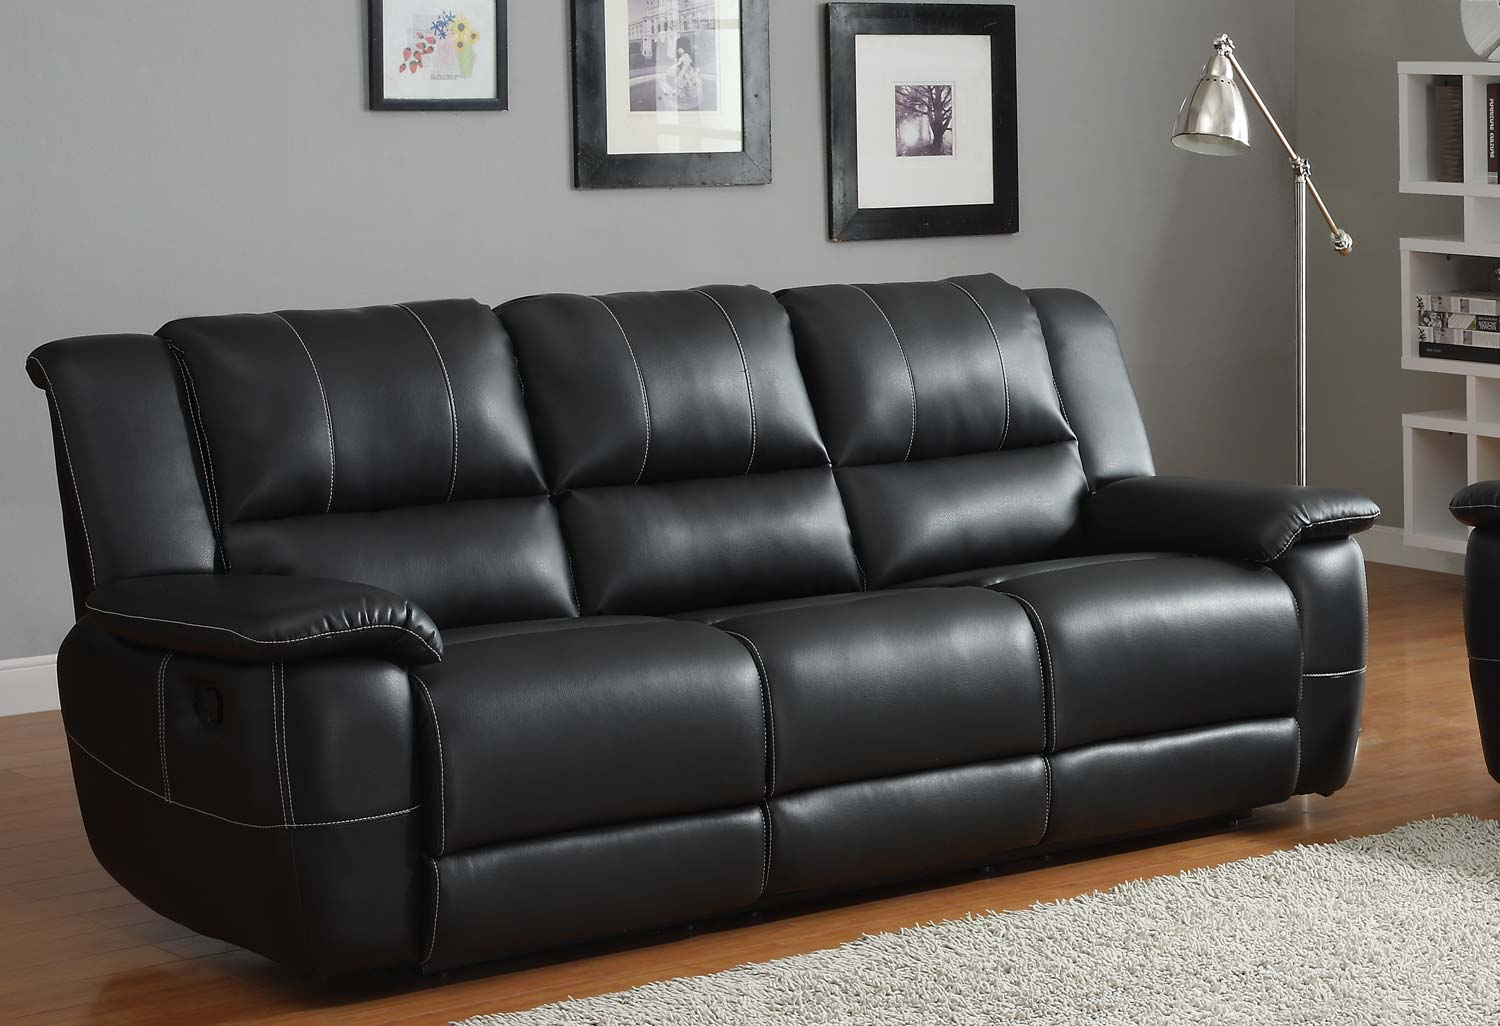 homelegance cantrell sofa double recliner black bonded leather match 9778blk 3 at. Black Bedroom Furniture Sets. Home Design Ideas